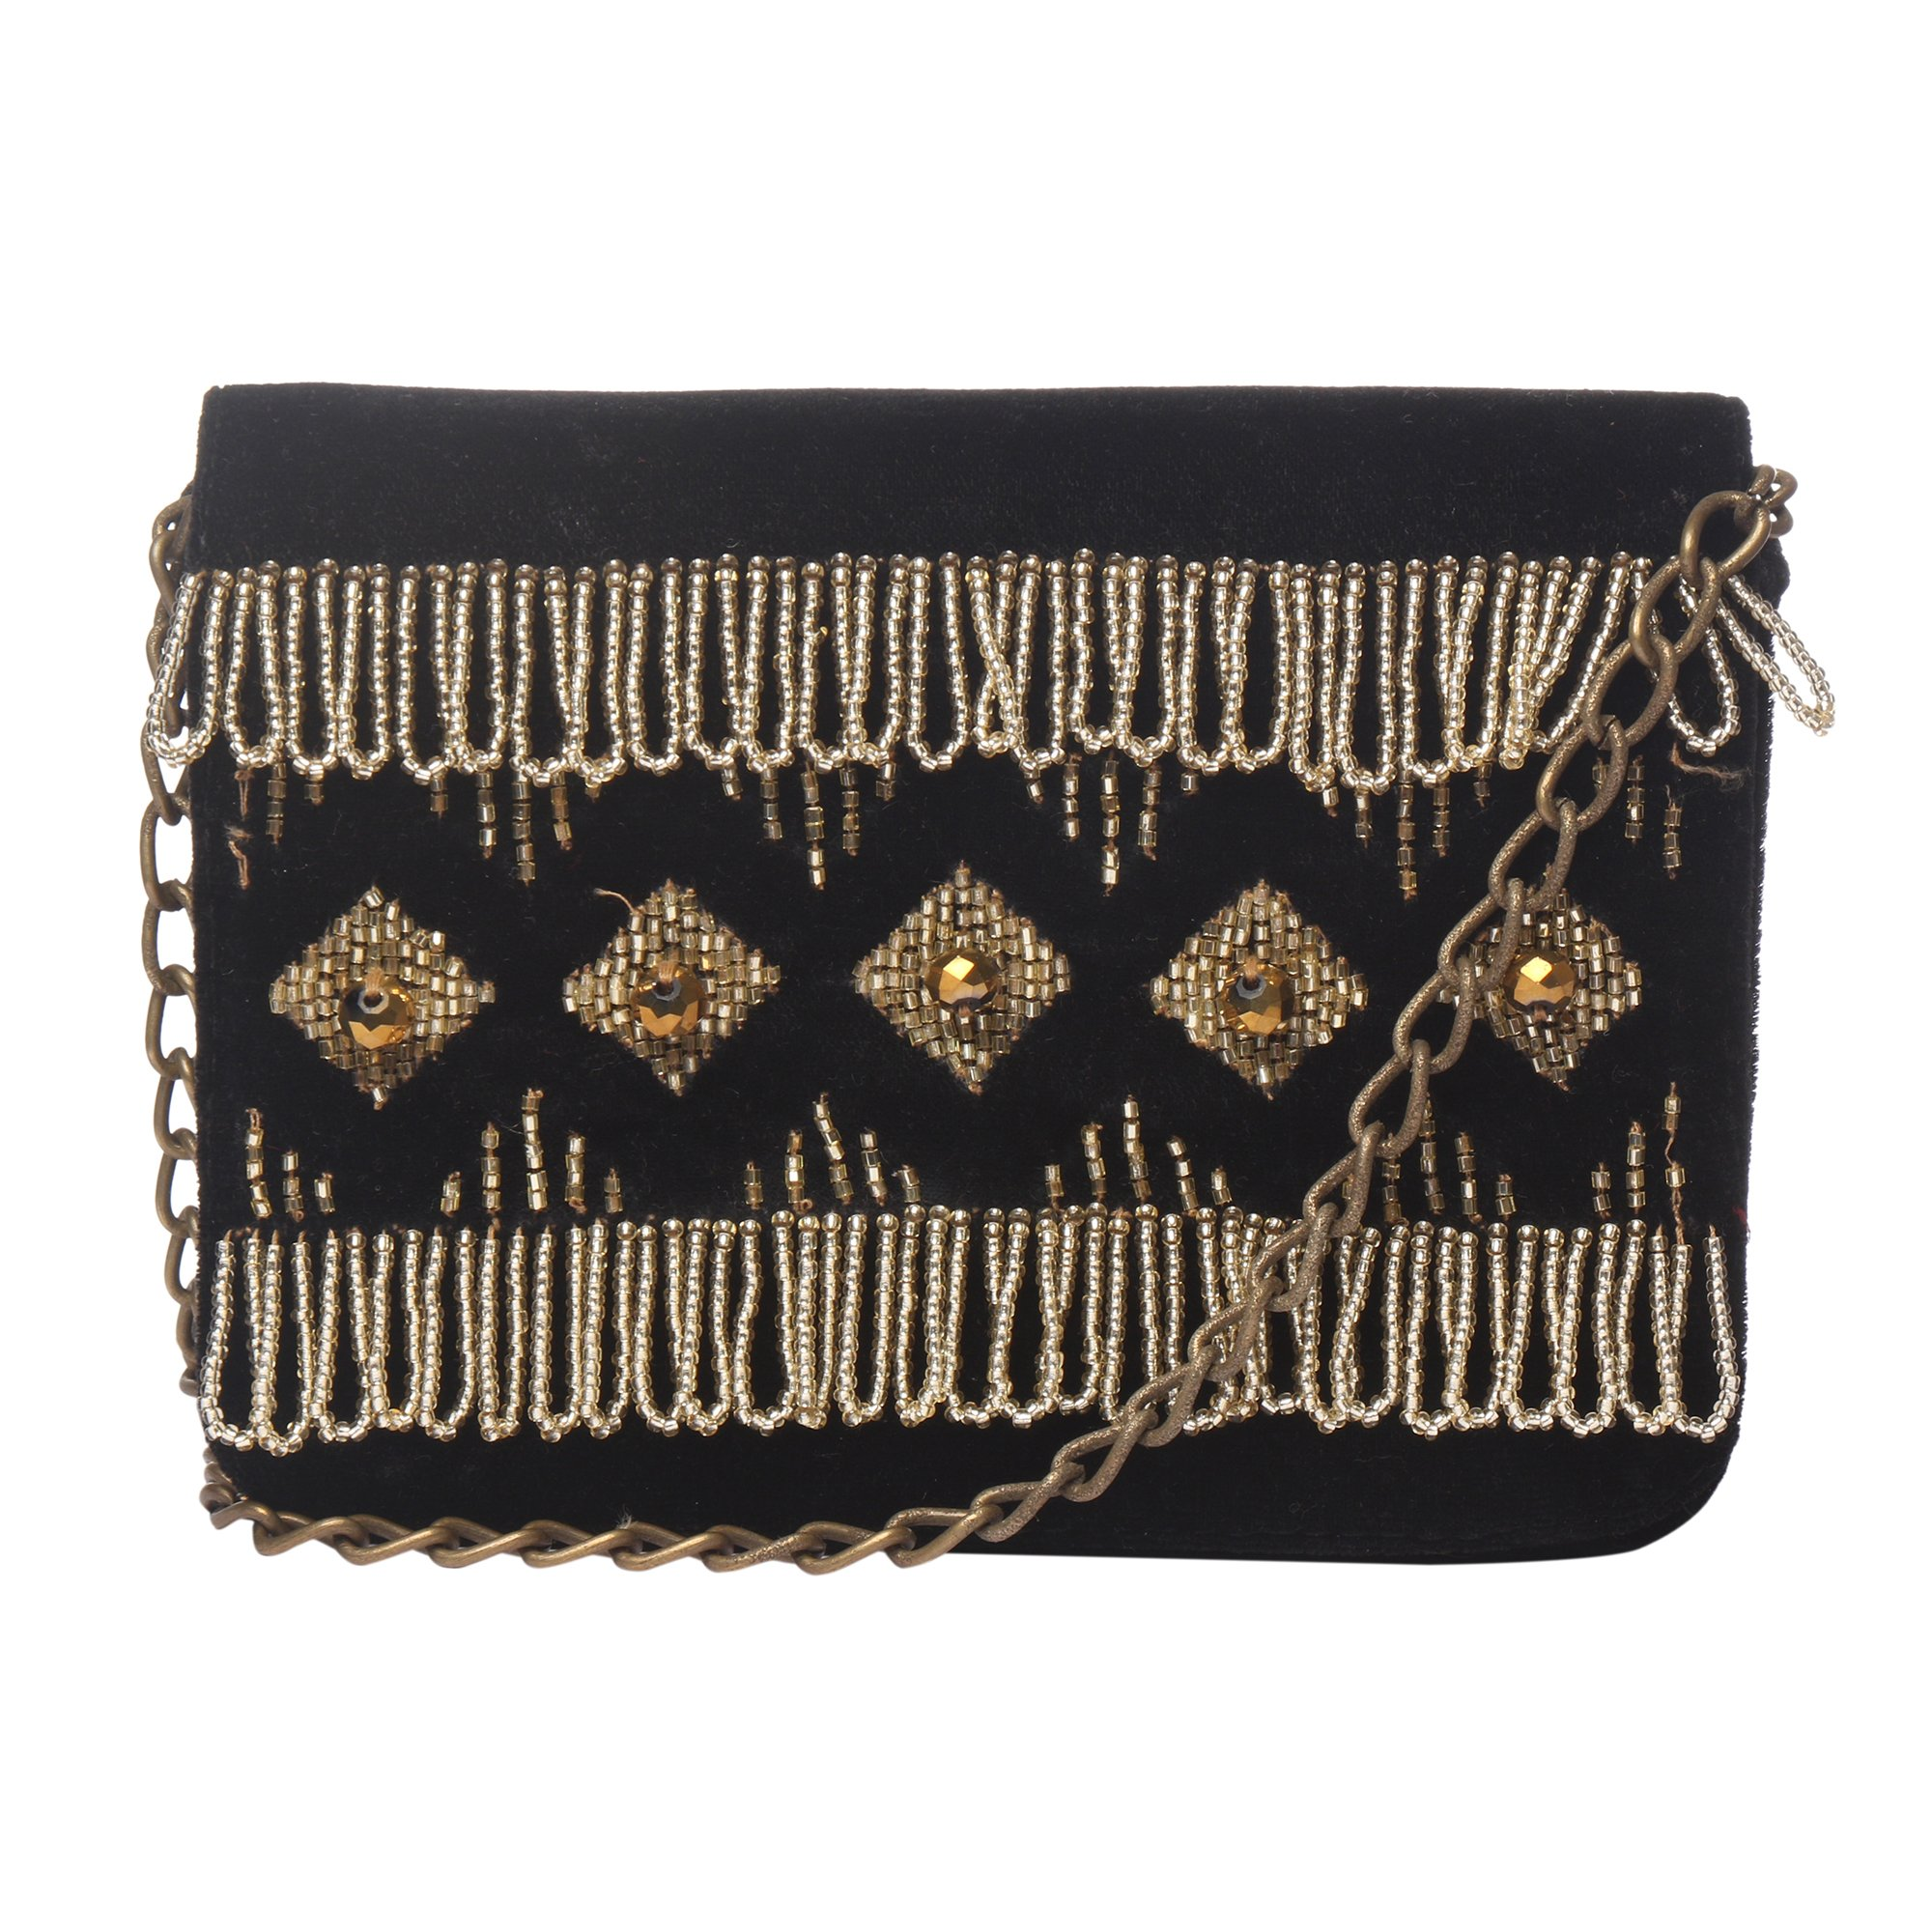 MONOKROME NEW YORK Hand beaded and Fringed Hard case ethnic black cross body with silver & gold beads clutch for women by